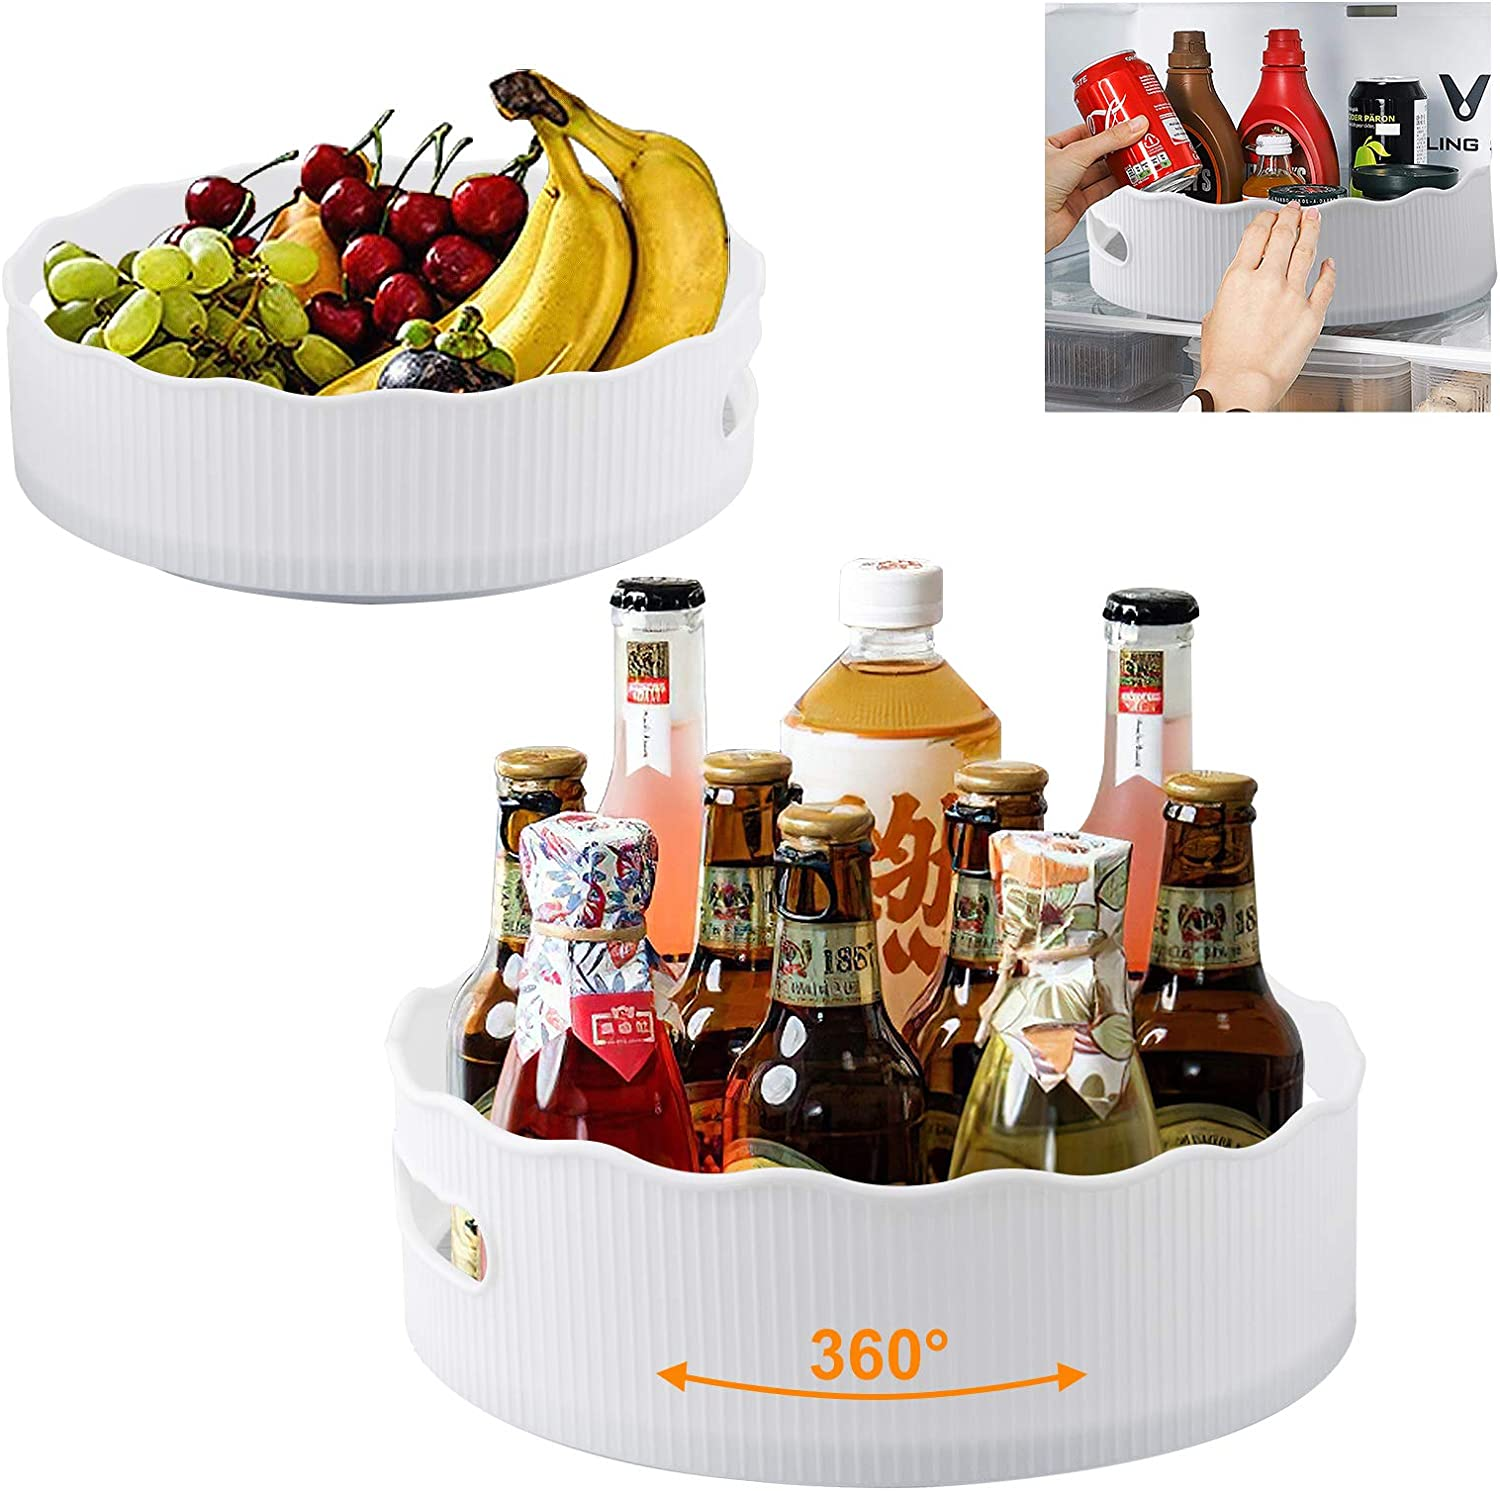 Domccy 2 Pack Pantry Cabinet Lazy Susan Turntable with Handles, 11.5&9.52 Inch, Non-skid Plastic Turntable for Spice Holder Food Condiment Storage, fit Kitchen, Bathroom, Cabinets, Fridge, Countertop